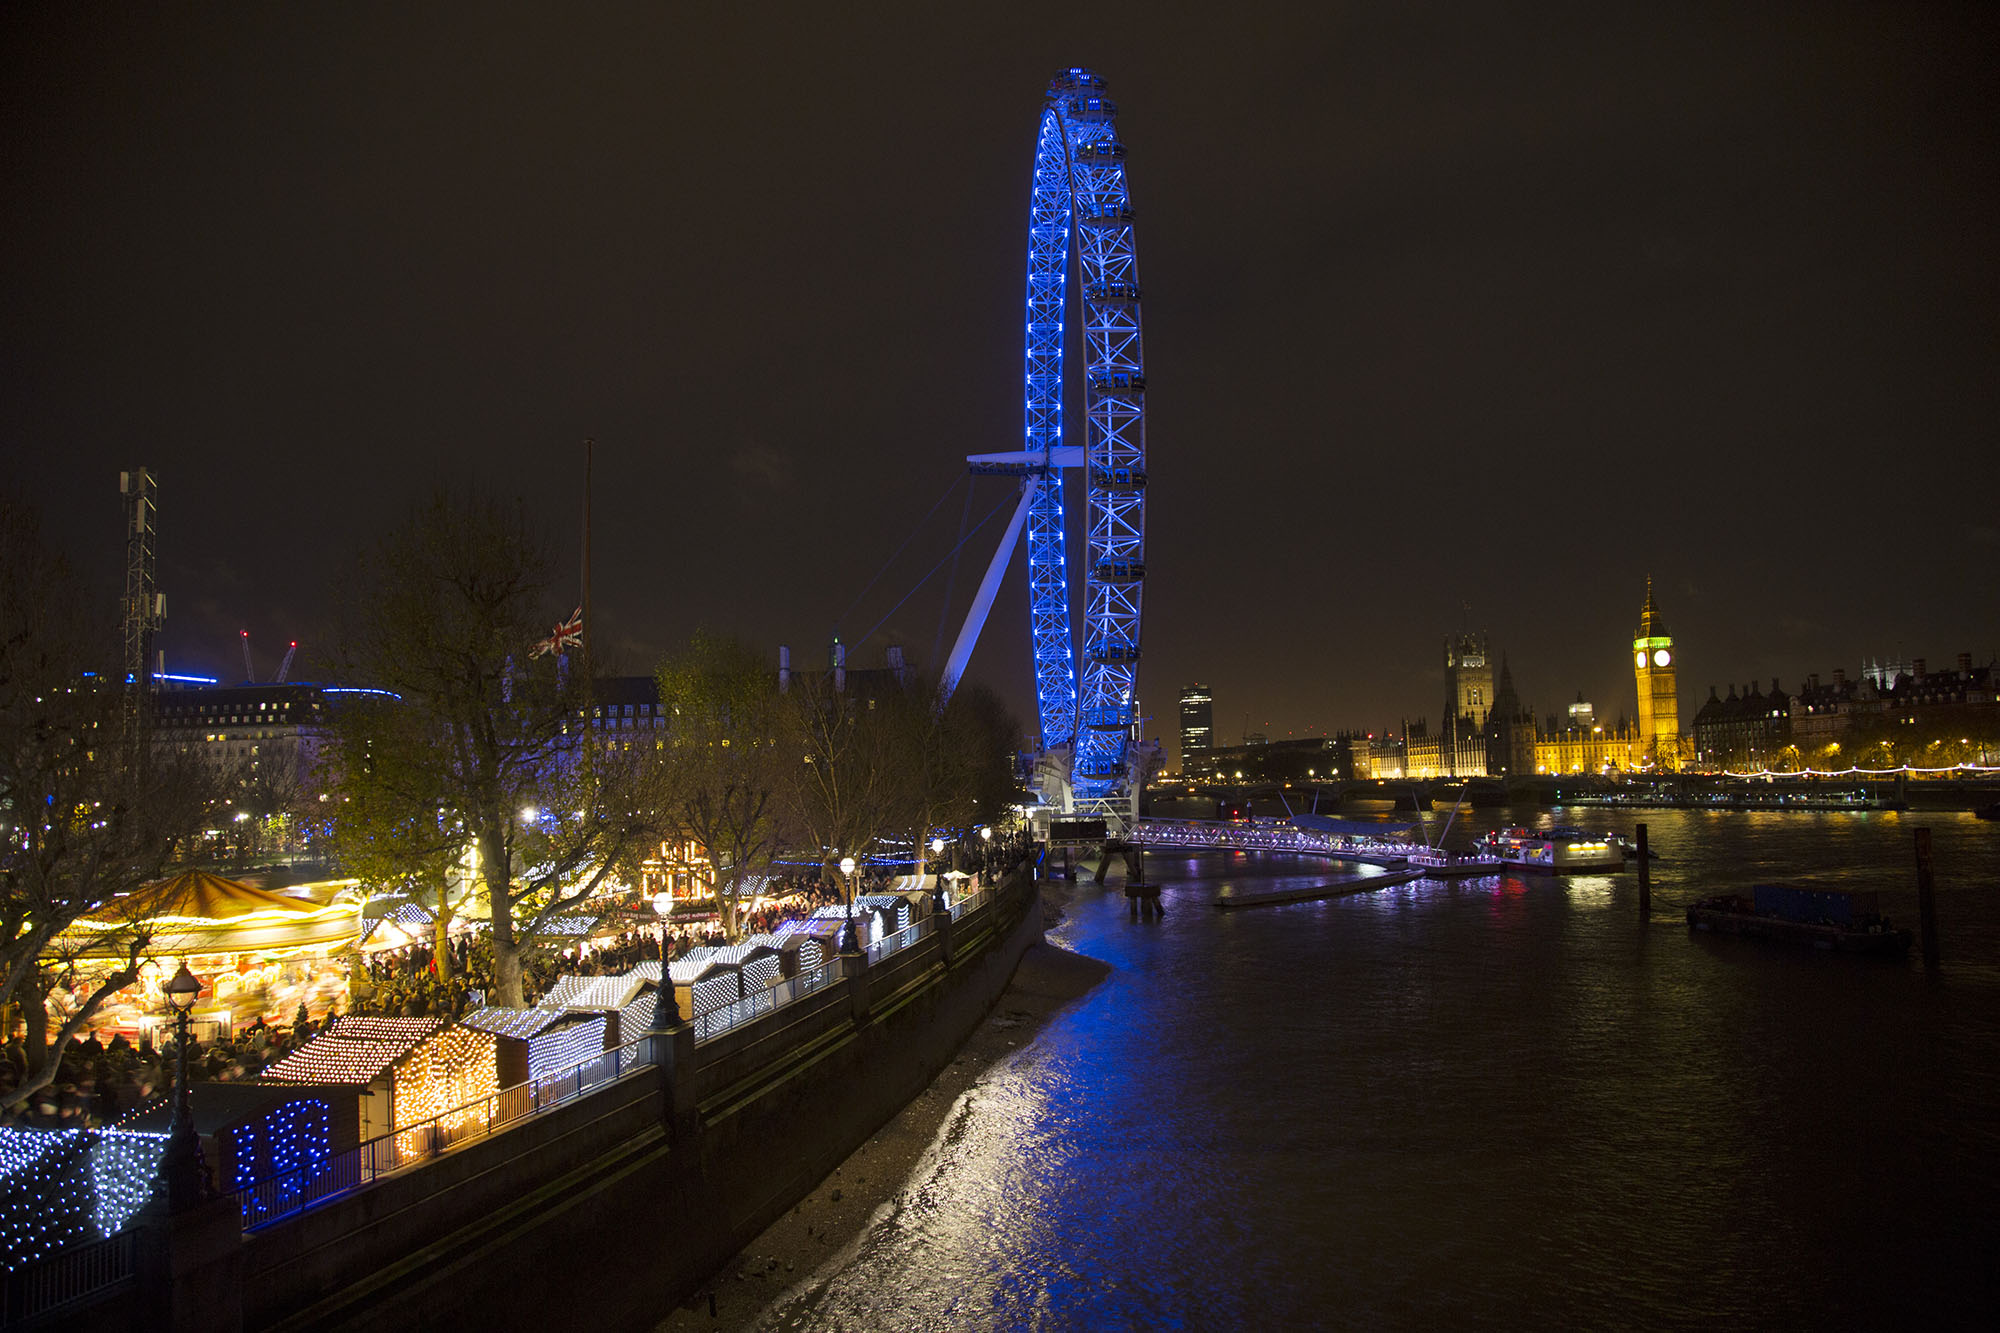 View during the Christmas season, towards the London Eye and Westminster across the River Thames.